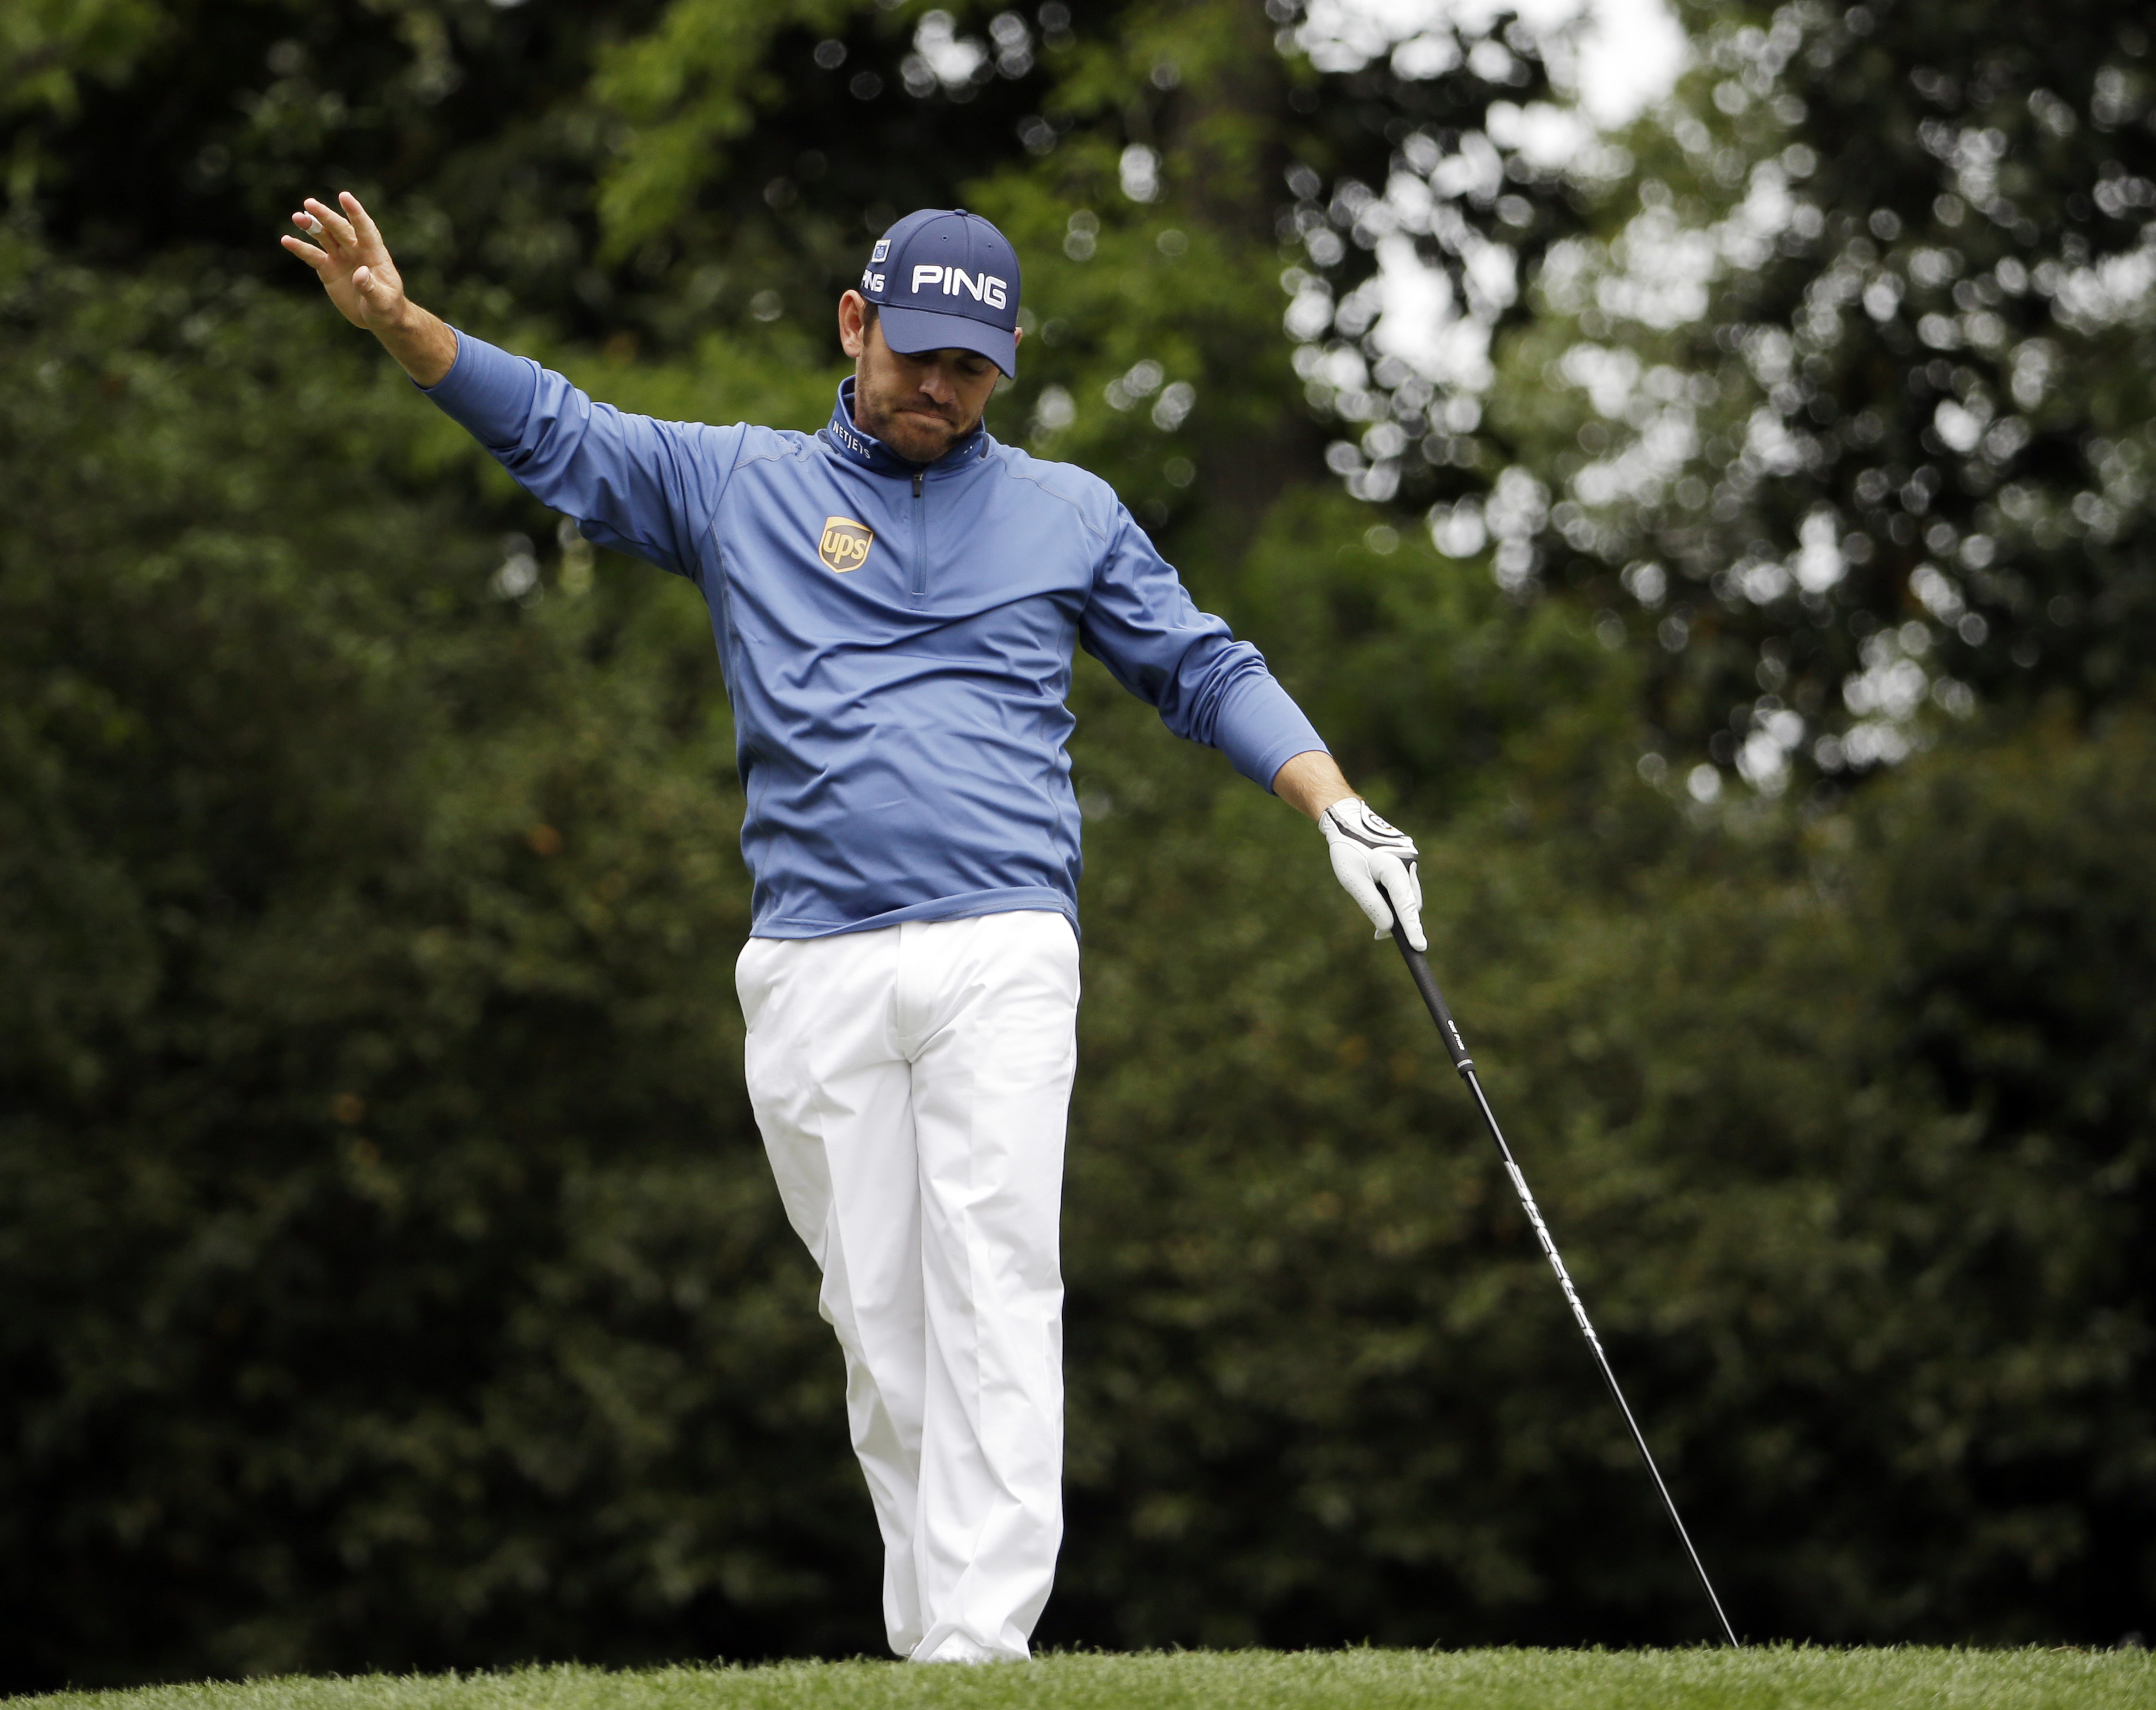 Louis Oosthuizen, of South Africa, reacts after teeing off on the second hole during the final round of the Masters golf tournament Sunday, April 10, 2016, in Augusta, Ga. (AP Photo/David J. Phillip)